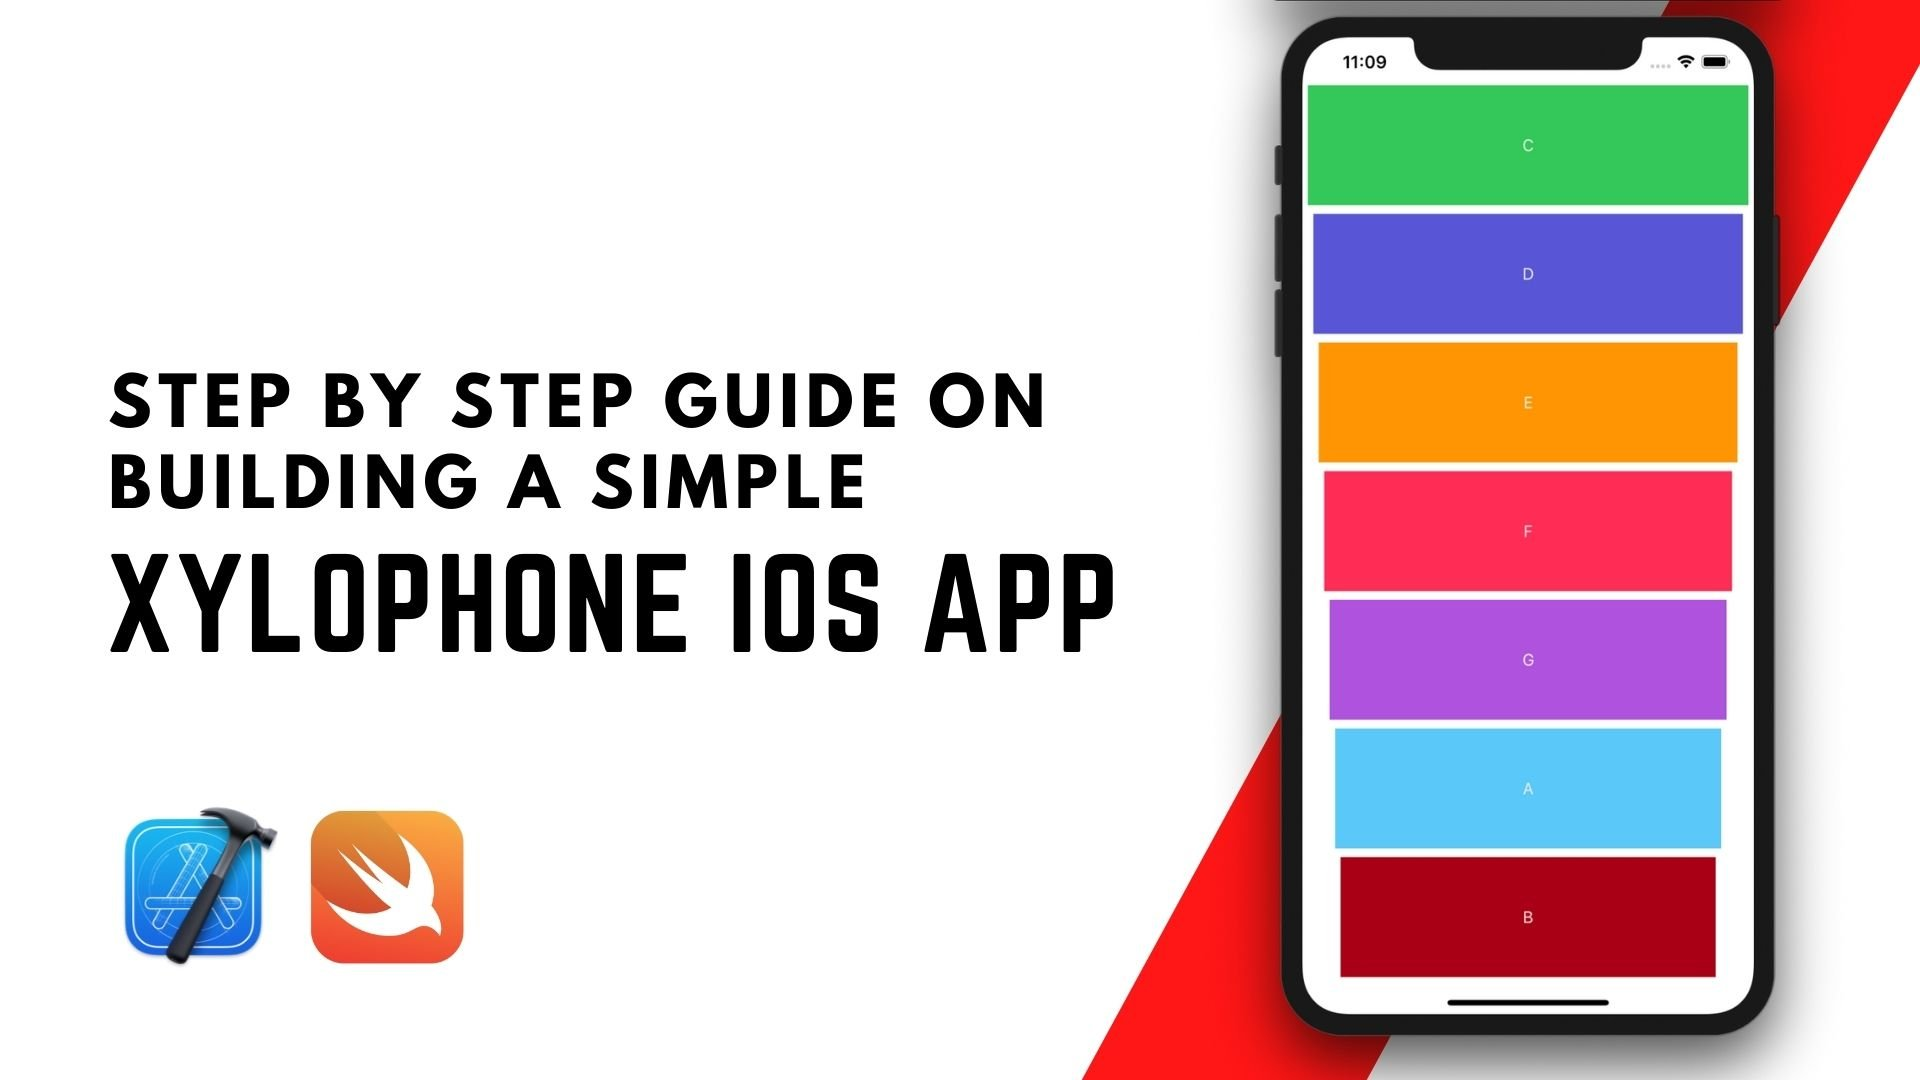 Build a Simple Xylophone App - iOS Development Step by Step Guide